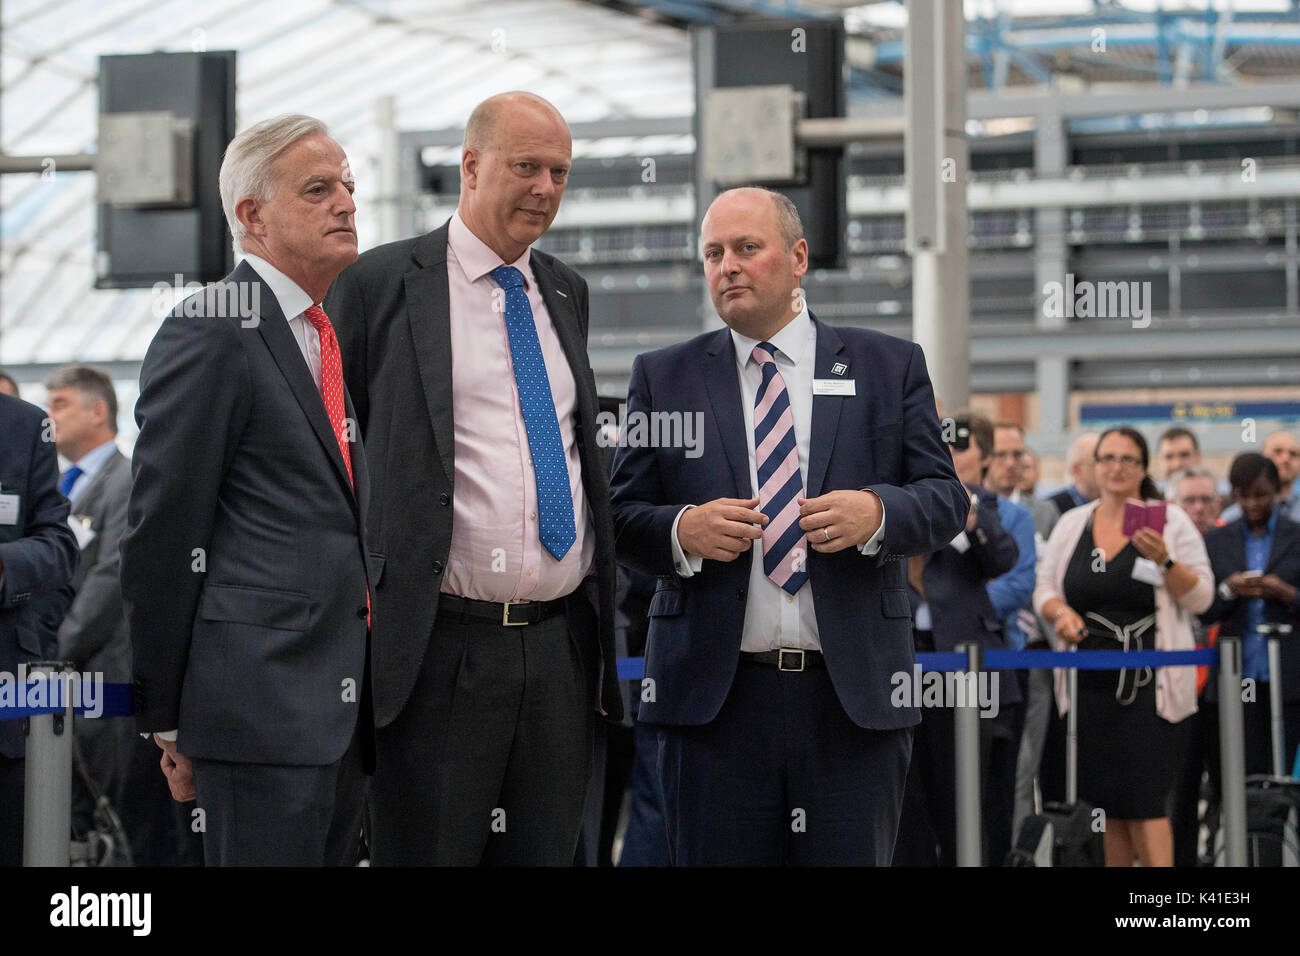 (Left to right) FirstGroup chief executive Tim O'Toole, Transport Secretary Chris Grayling and South Western Railway managing director Andy Mellors at Waterloo station in central London after South Western Railway's first fully-liveried Class 444 train arrived into the former international terminal. - Stock Image